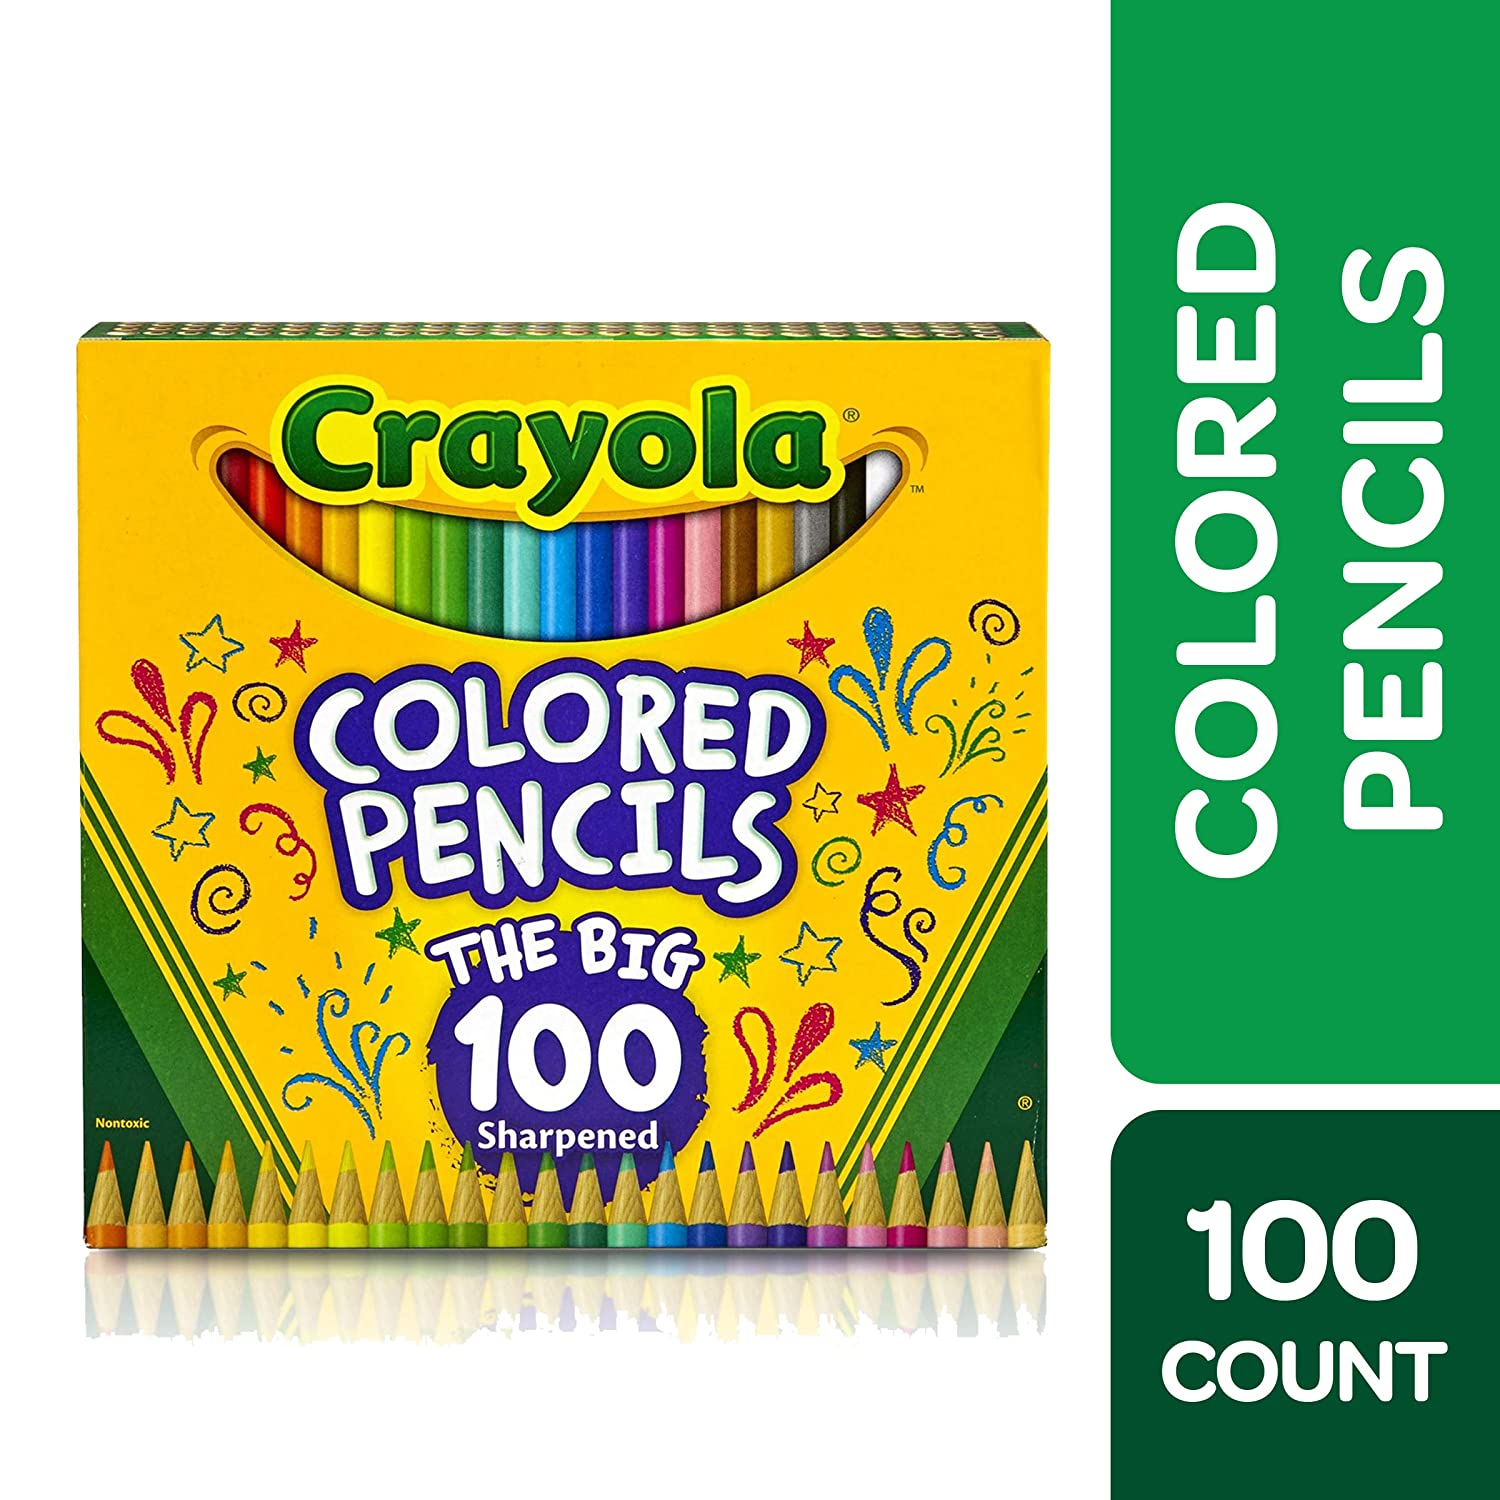 Crayola Colored Pencils - 100 Ct.